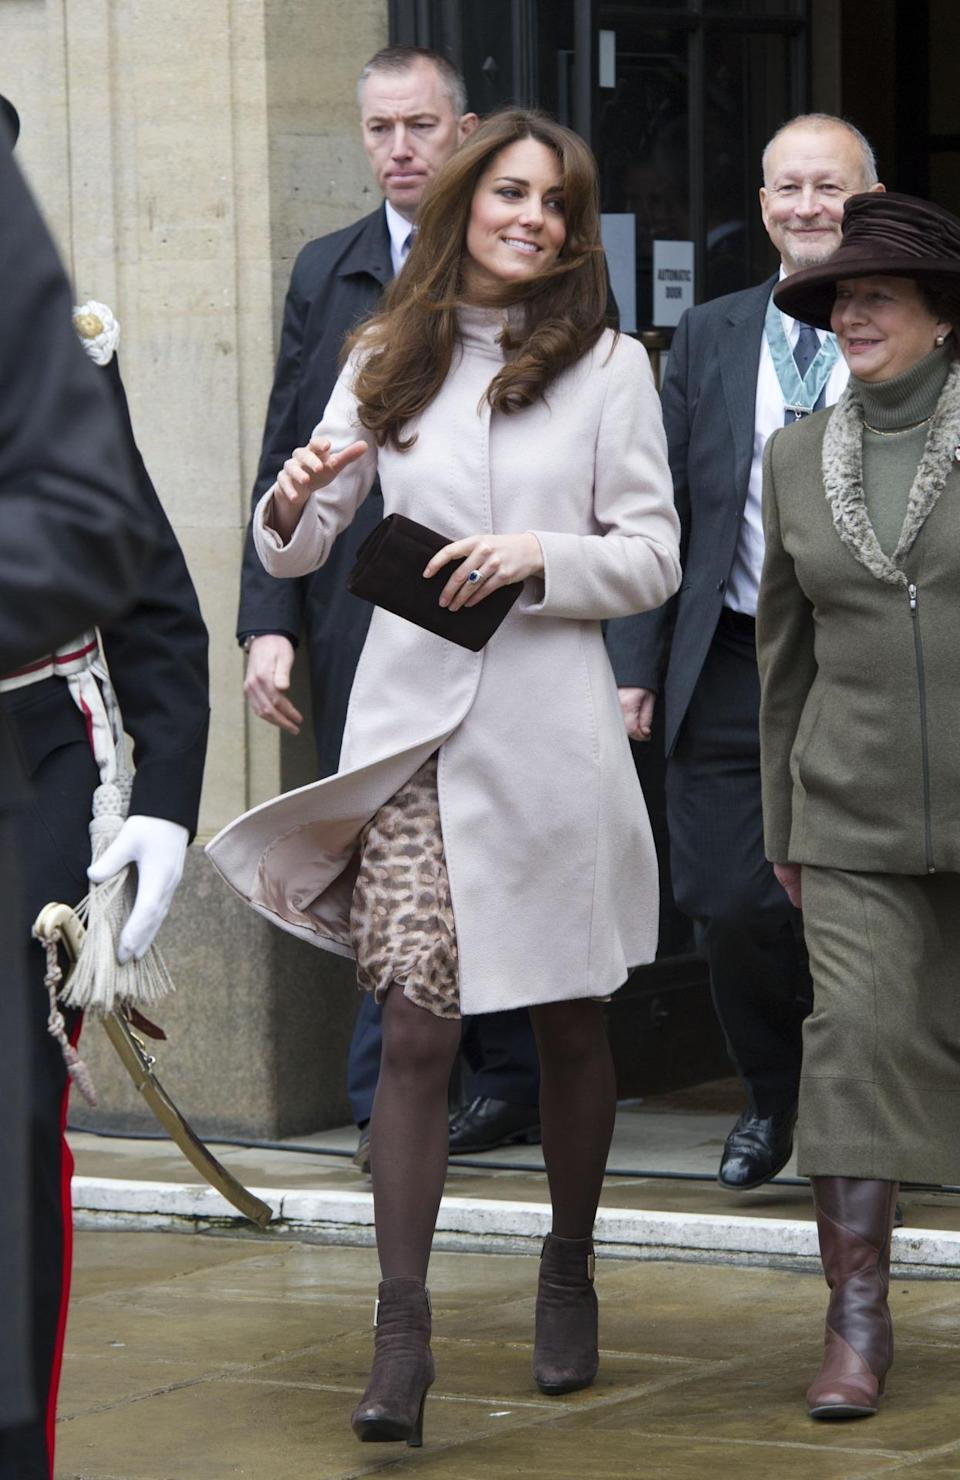 <p>For a trip to Cambridge, Kate donned a beige belted coat by Max Mara with a printed dress underneath. She accessorised with brown suede ankle boots by favourite label, Aquatalia. </p><p><i>[Photo: PA]</i></p>